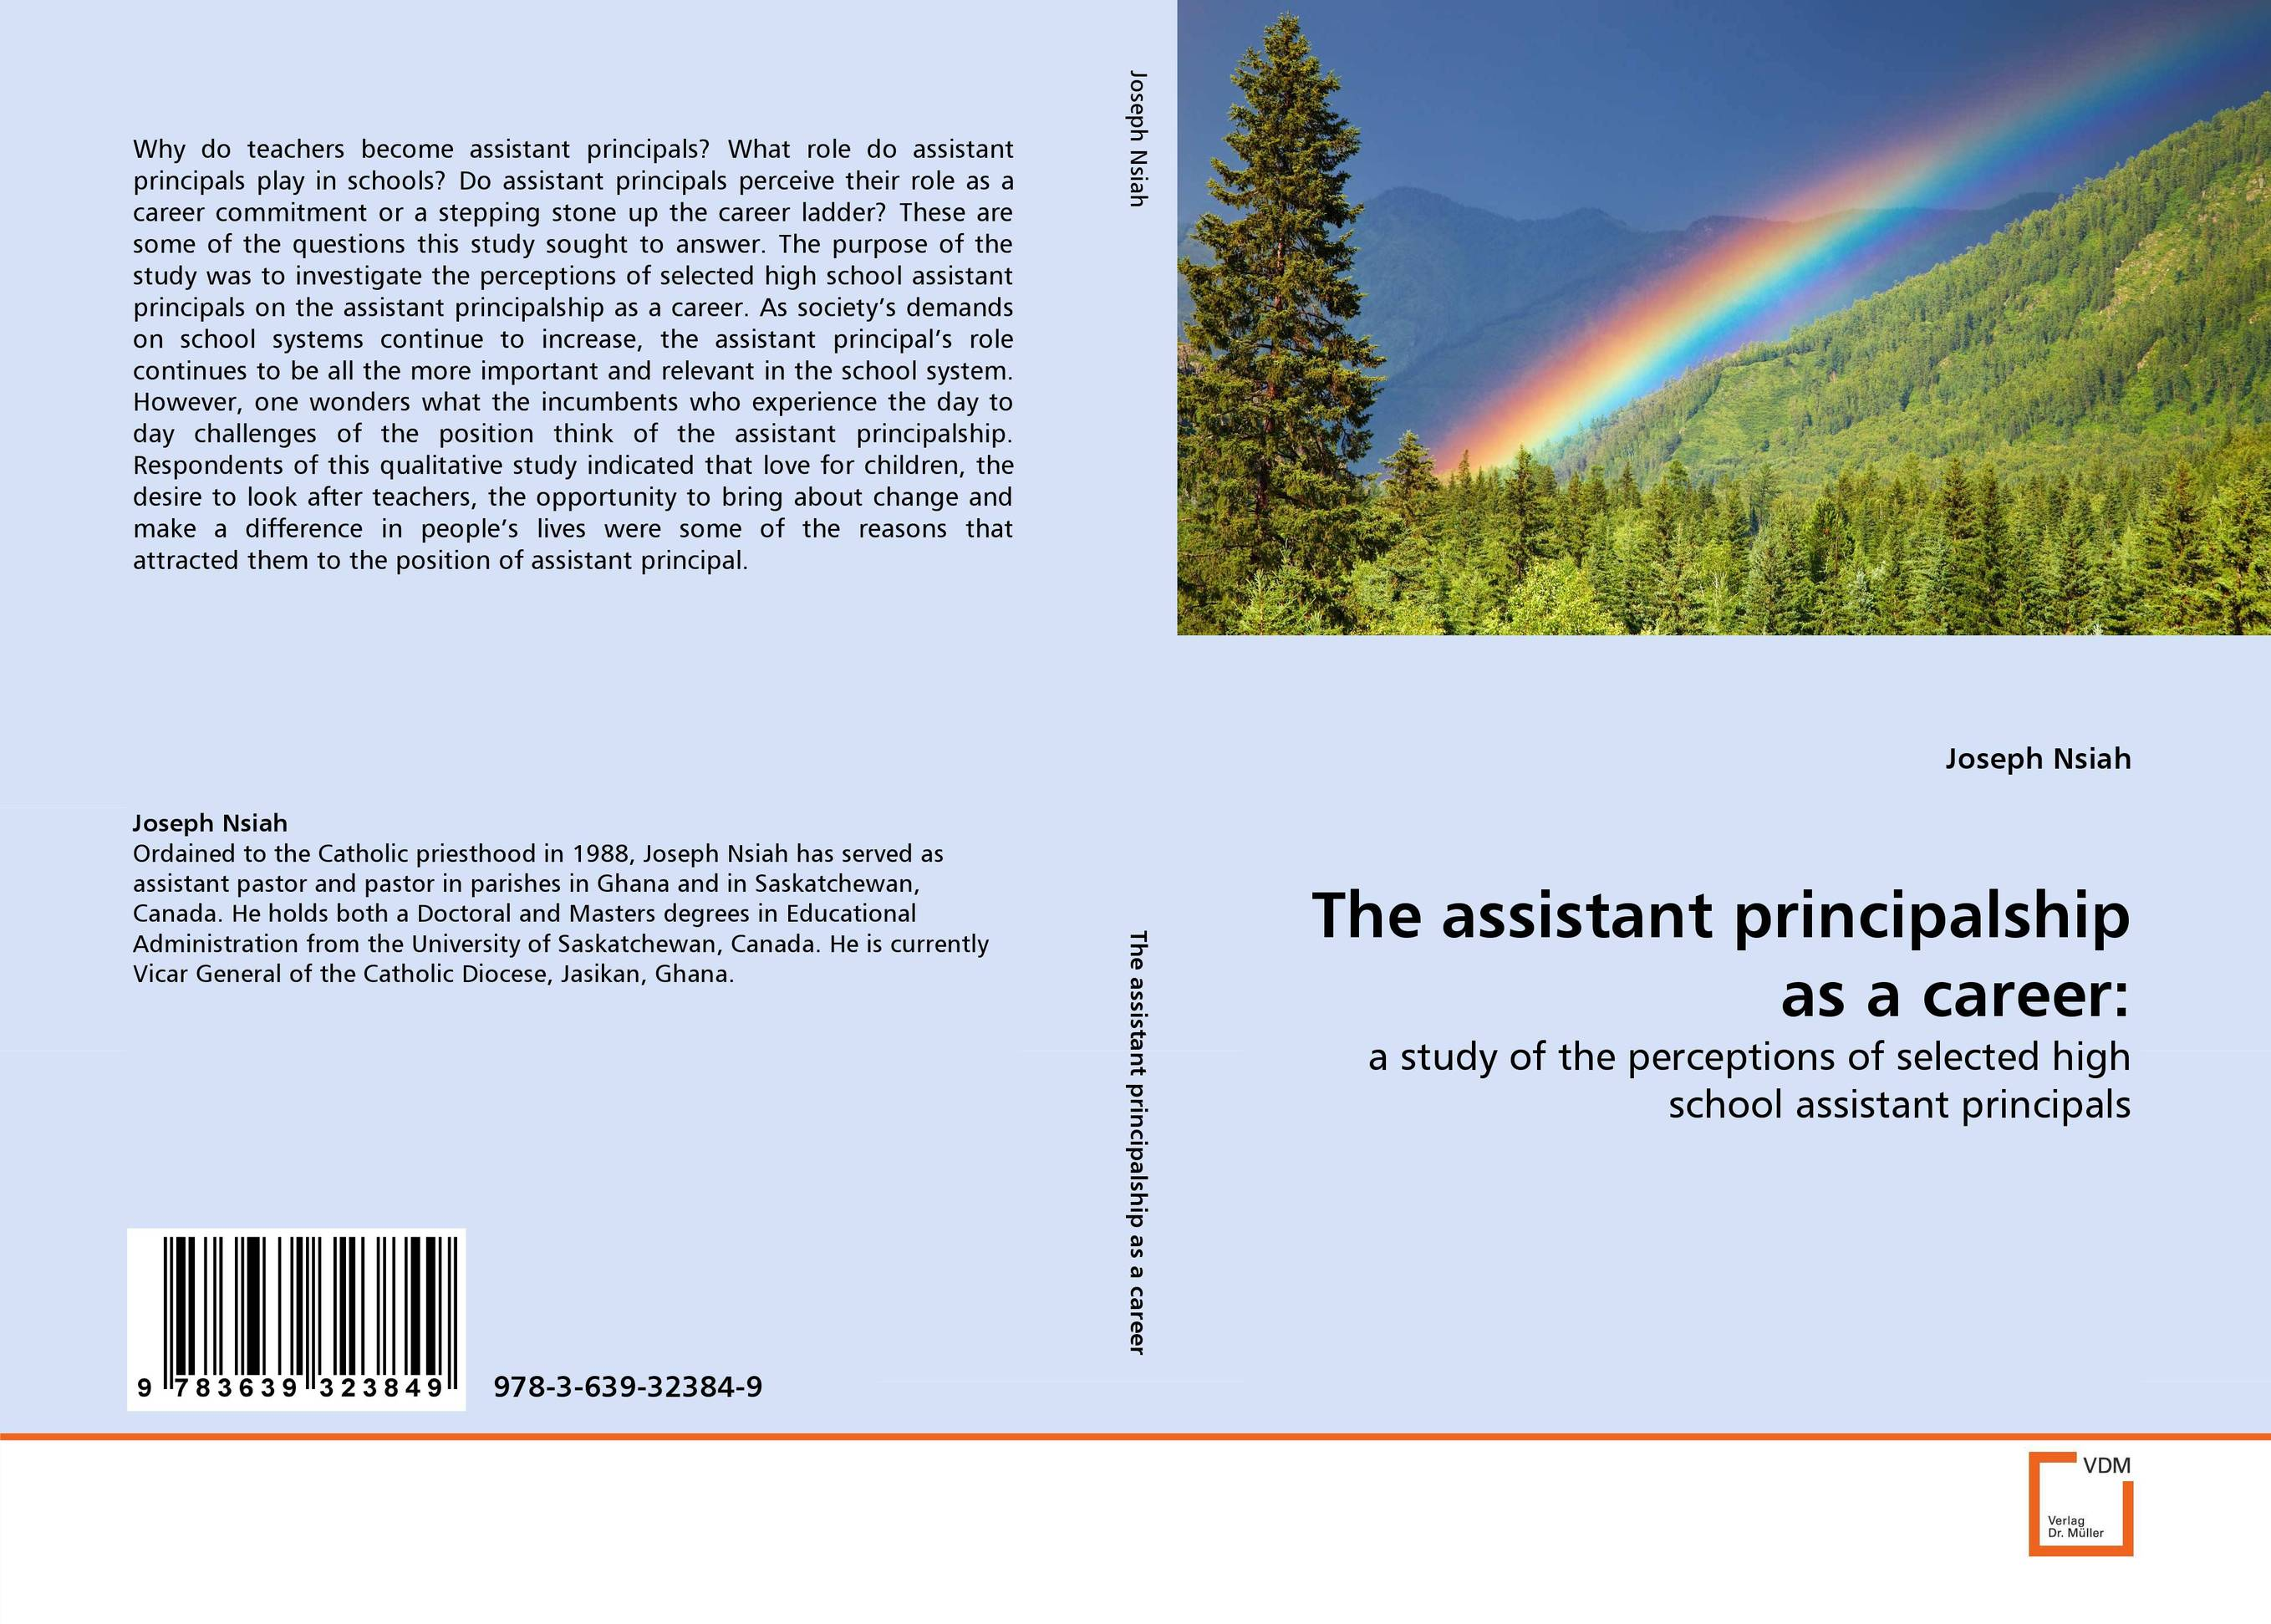 The assistant principalship as a career: the assistant principalship as a career